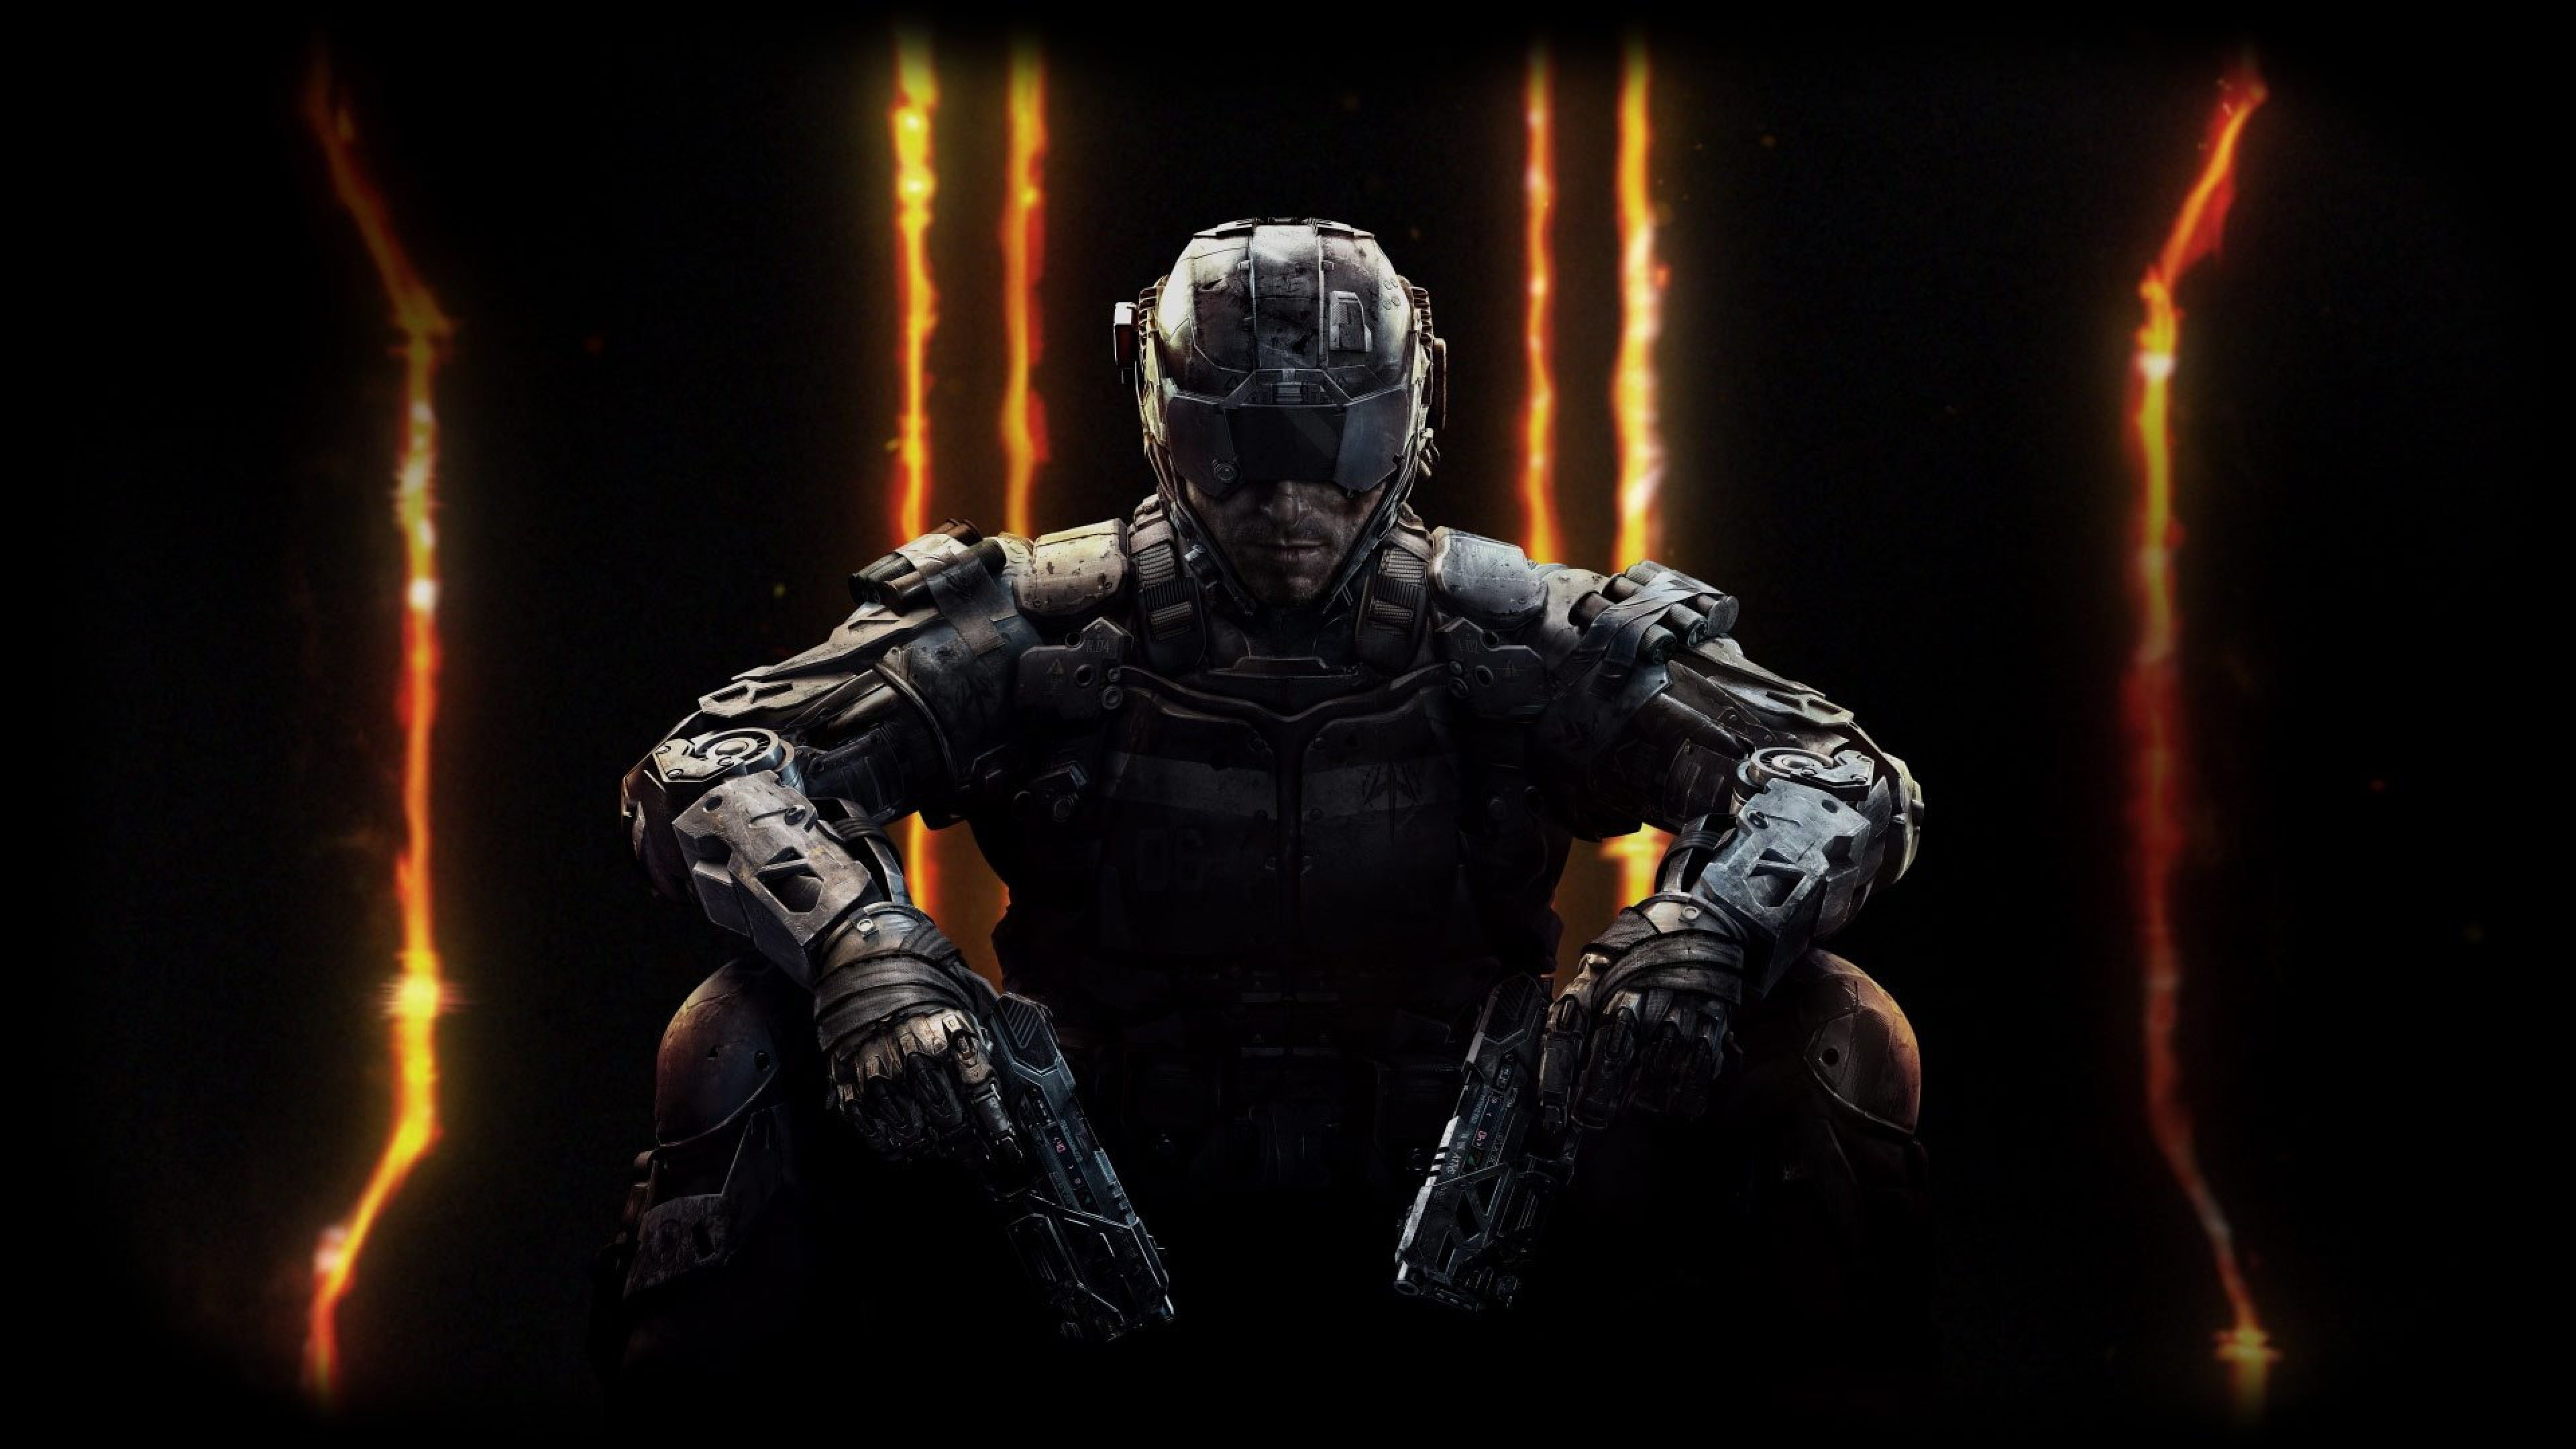 Ultra 4k Hd Black Ops 3 Wallpaper Abelohnes Call Of Duty Black